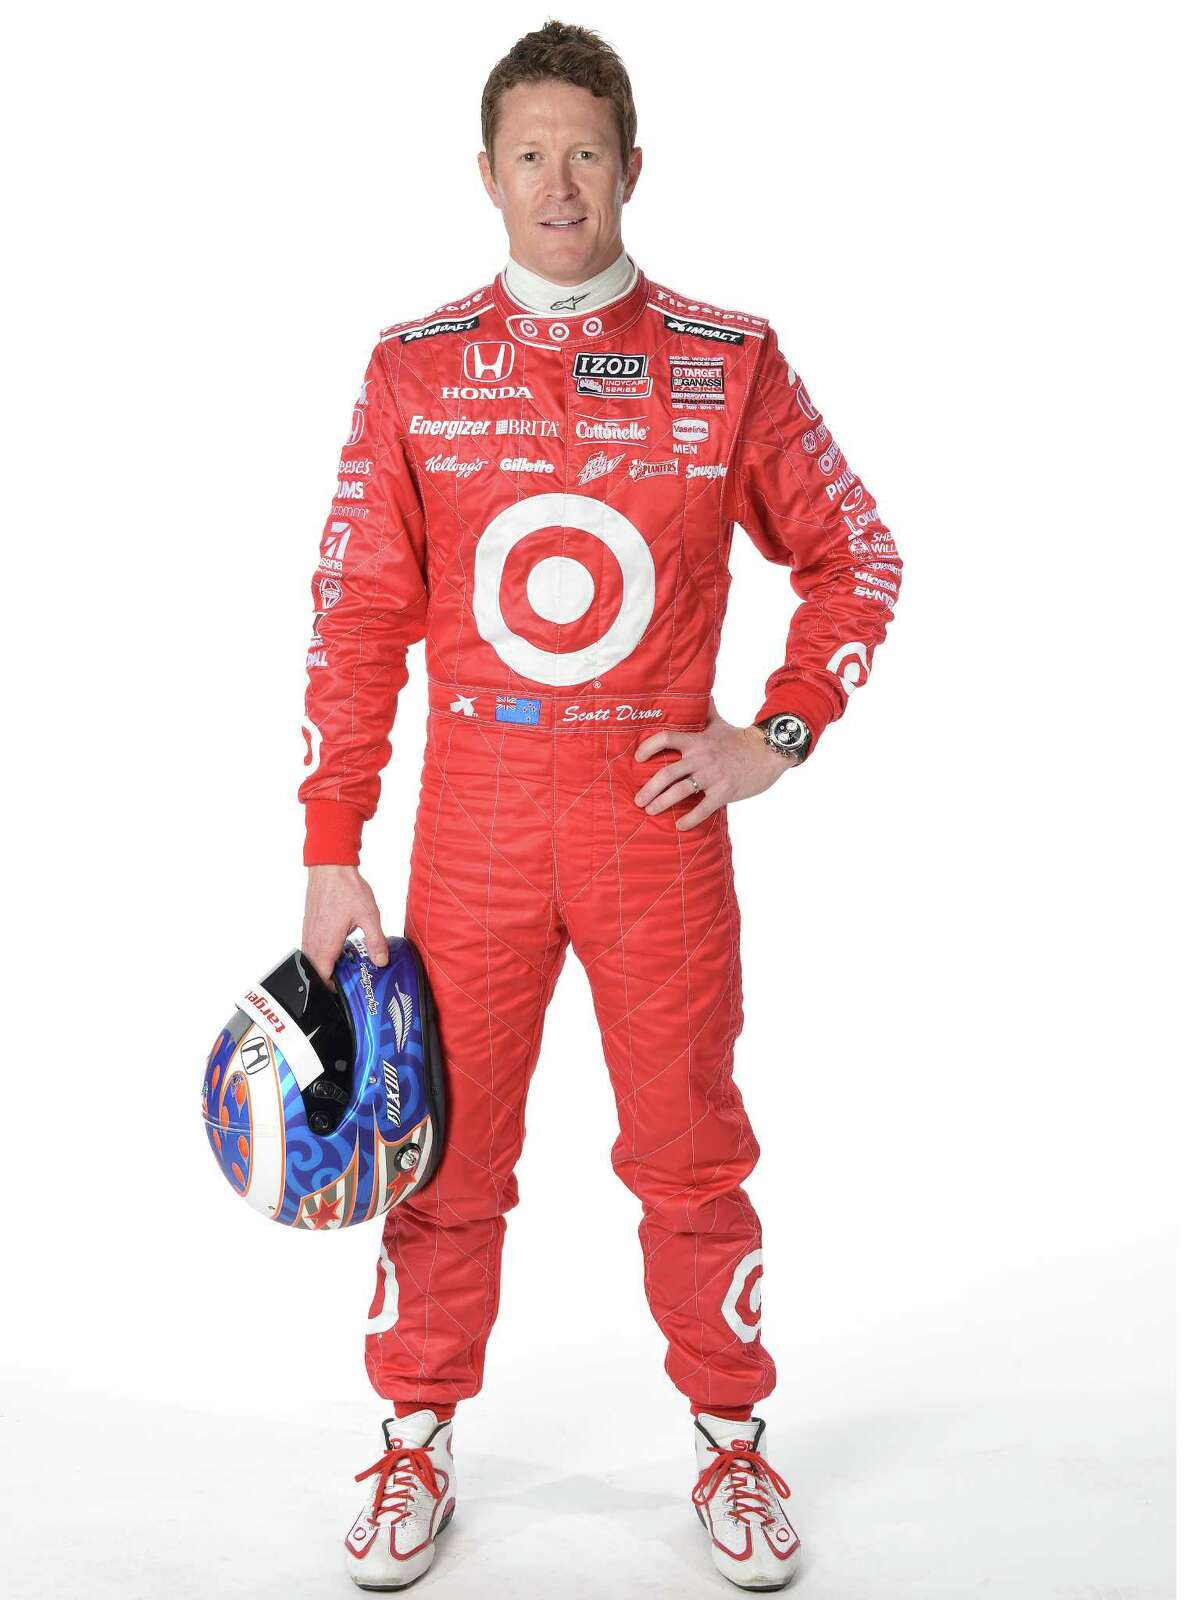 Scott Dixon  Car No.: 9  Team: Target Chip Ganassi Racing  Age: 33  Hometown: Auckland, New Zealand  Residence: Indianapolis, Ind.  Years in open-wheel racing: 12  Wins: 32  Highlights: The stoic Dixon is a two-time series champion and the 2008 Indy 500 winner. He is regarded as one of the most consistent drivers in the field. He's won three races this season and stands second in points, 49 behind Castroneves.